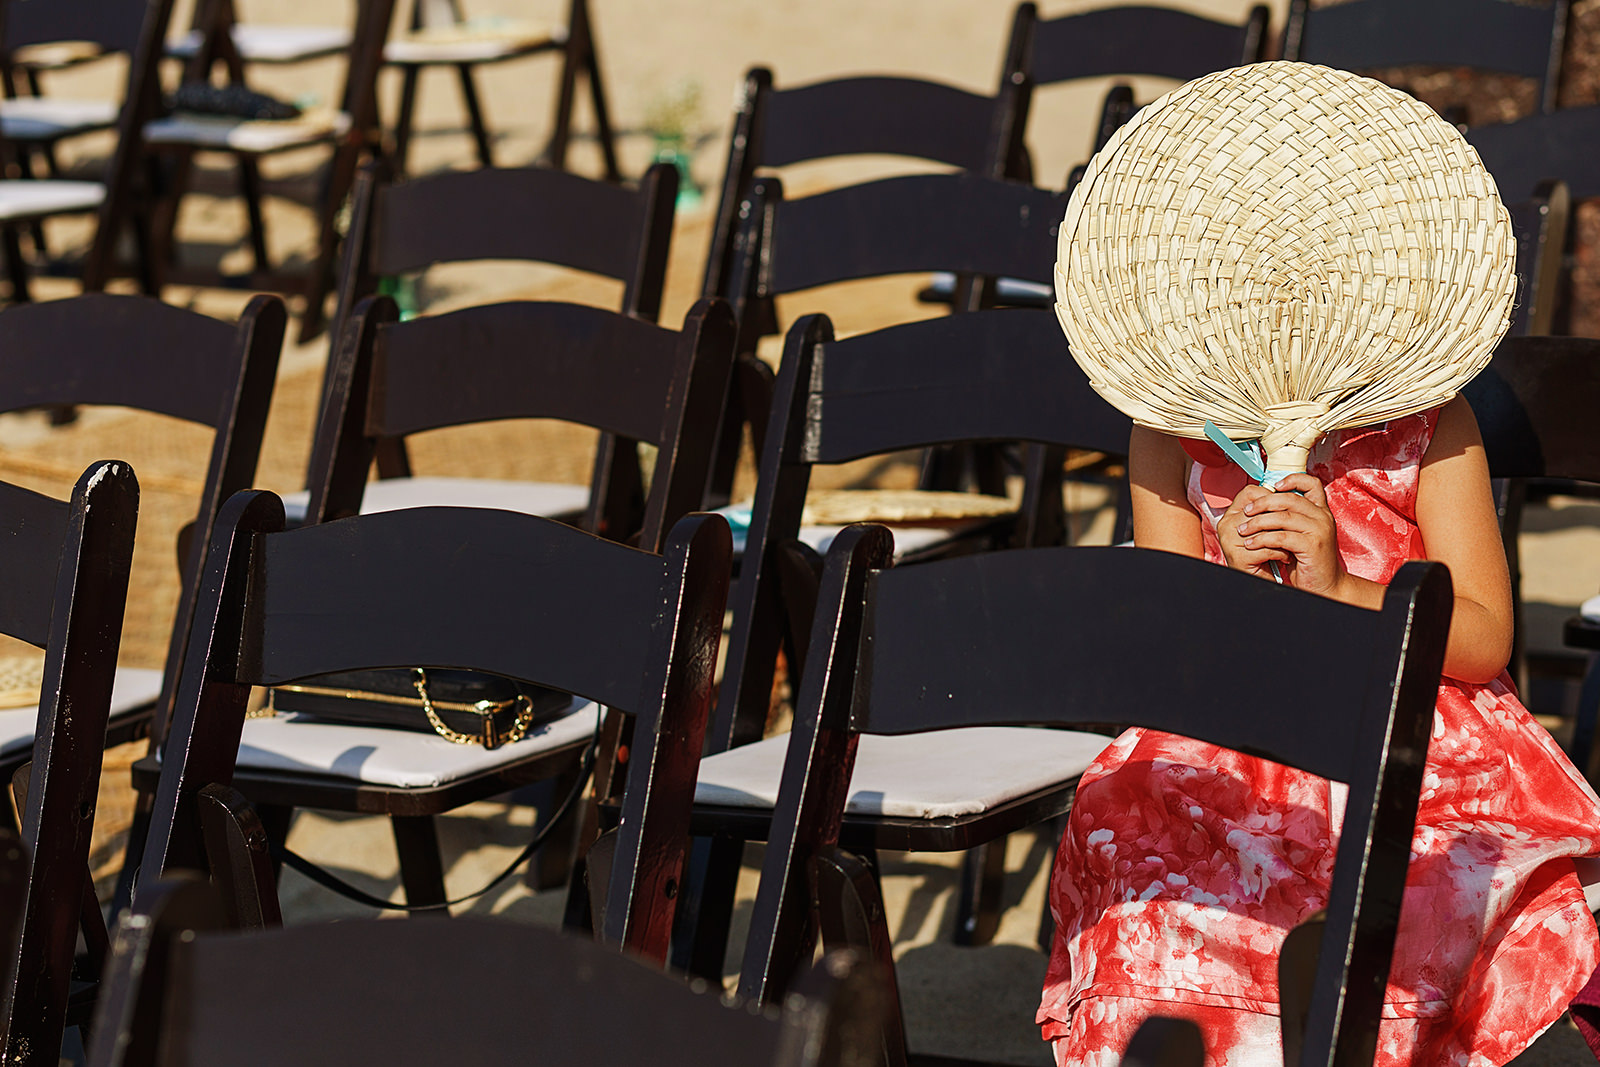 A little girl holds a fan to block the sun from her face and hide from the camera before the ceremony on the beach begins